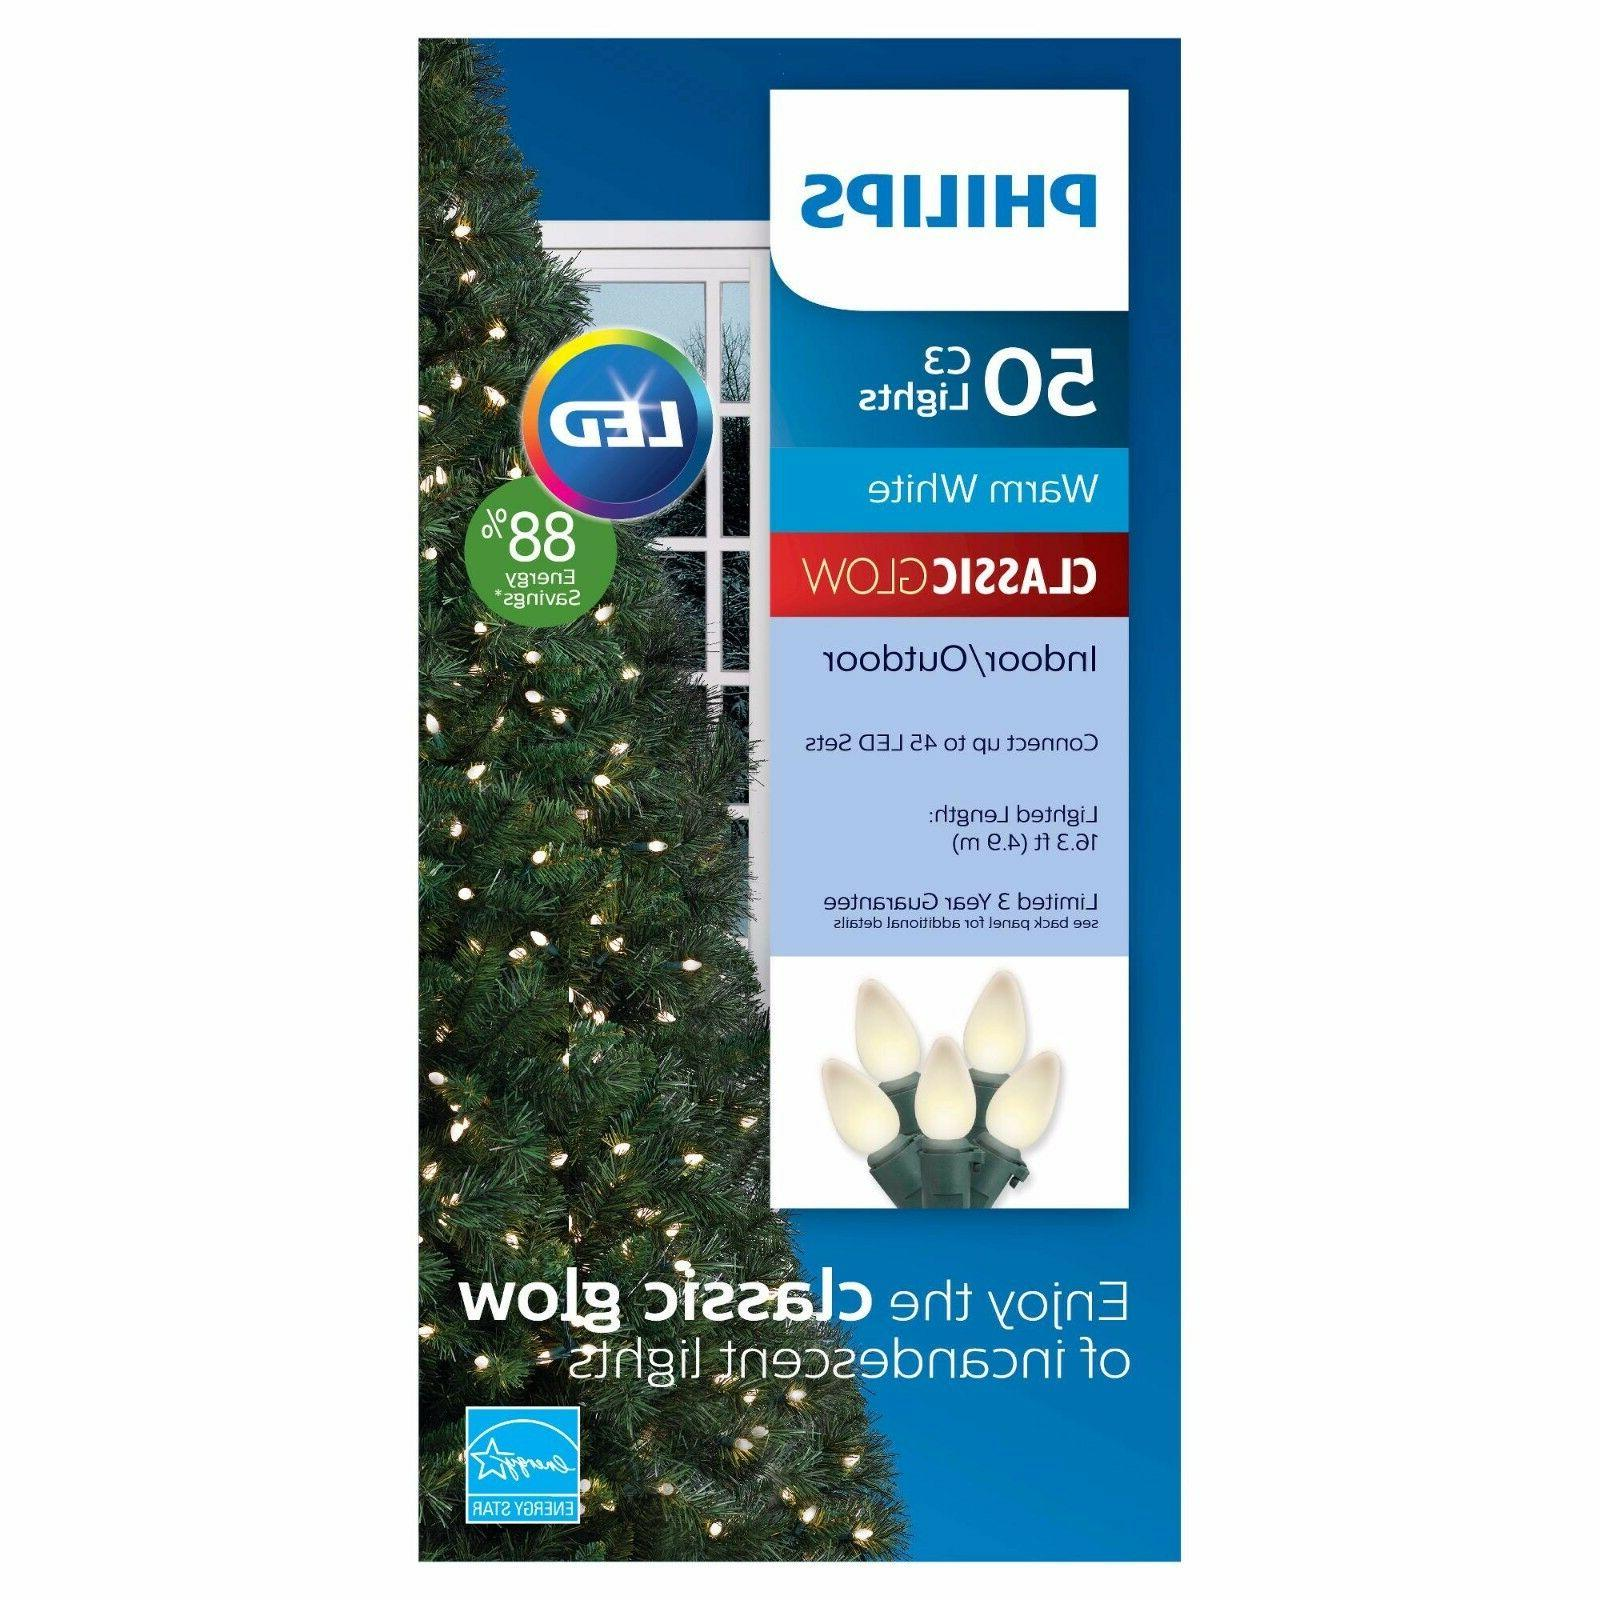 Philips Philips 50 ct LED C3 Smooth String Lights in Warm Wh